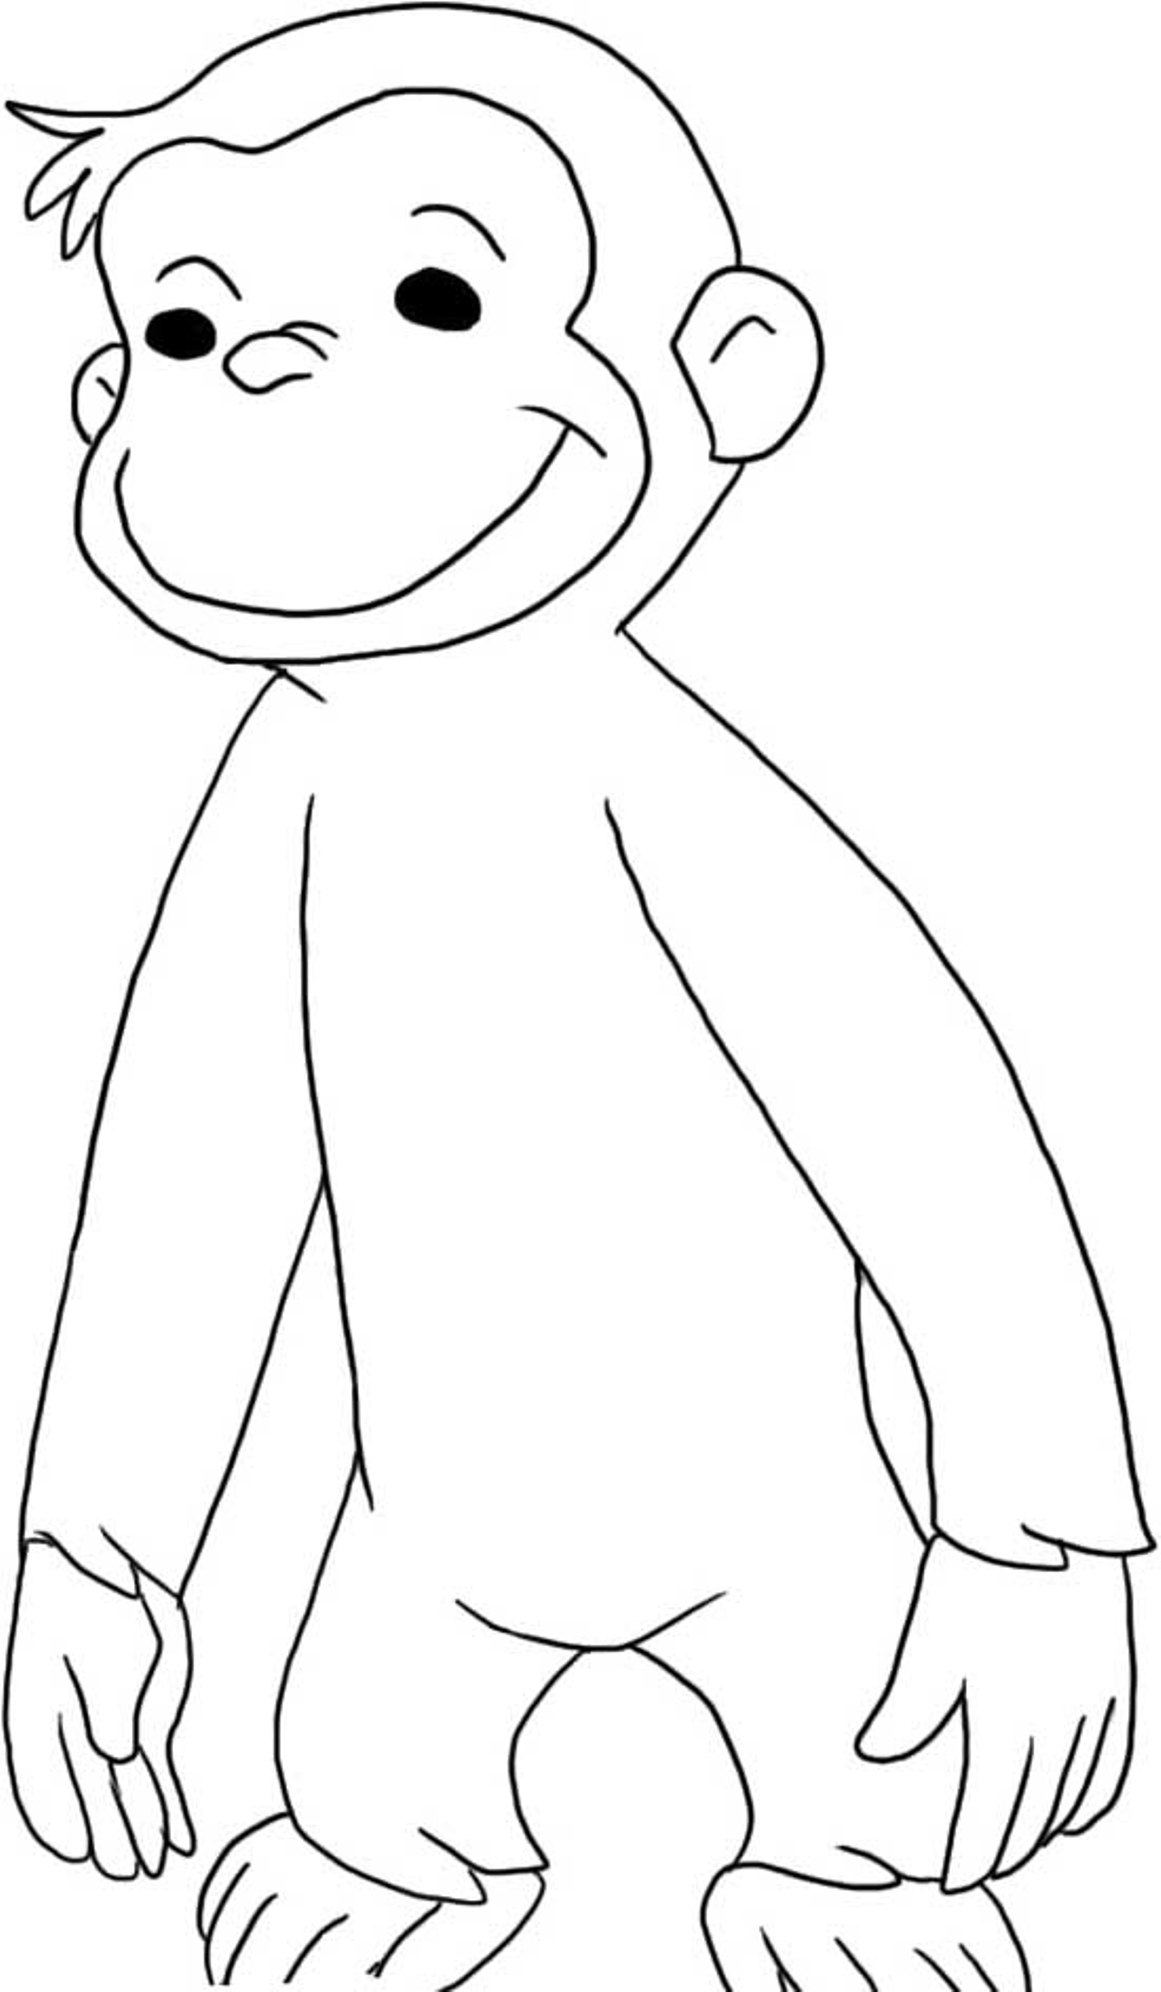 curious george coloring pages - photo#3